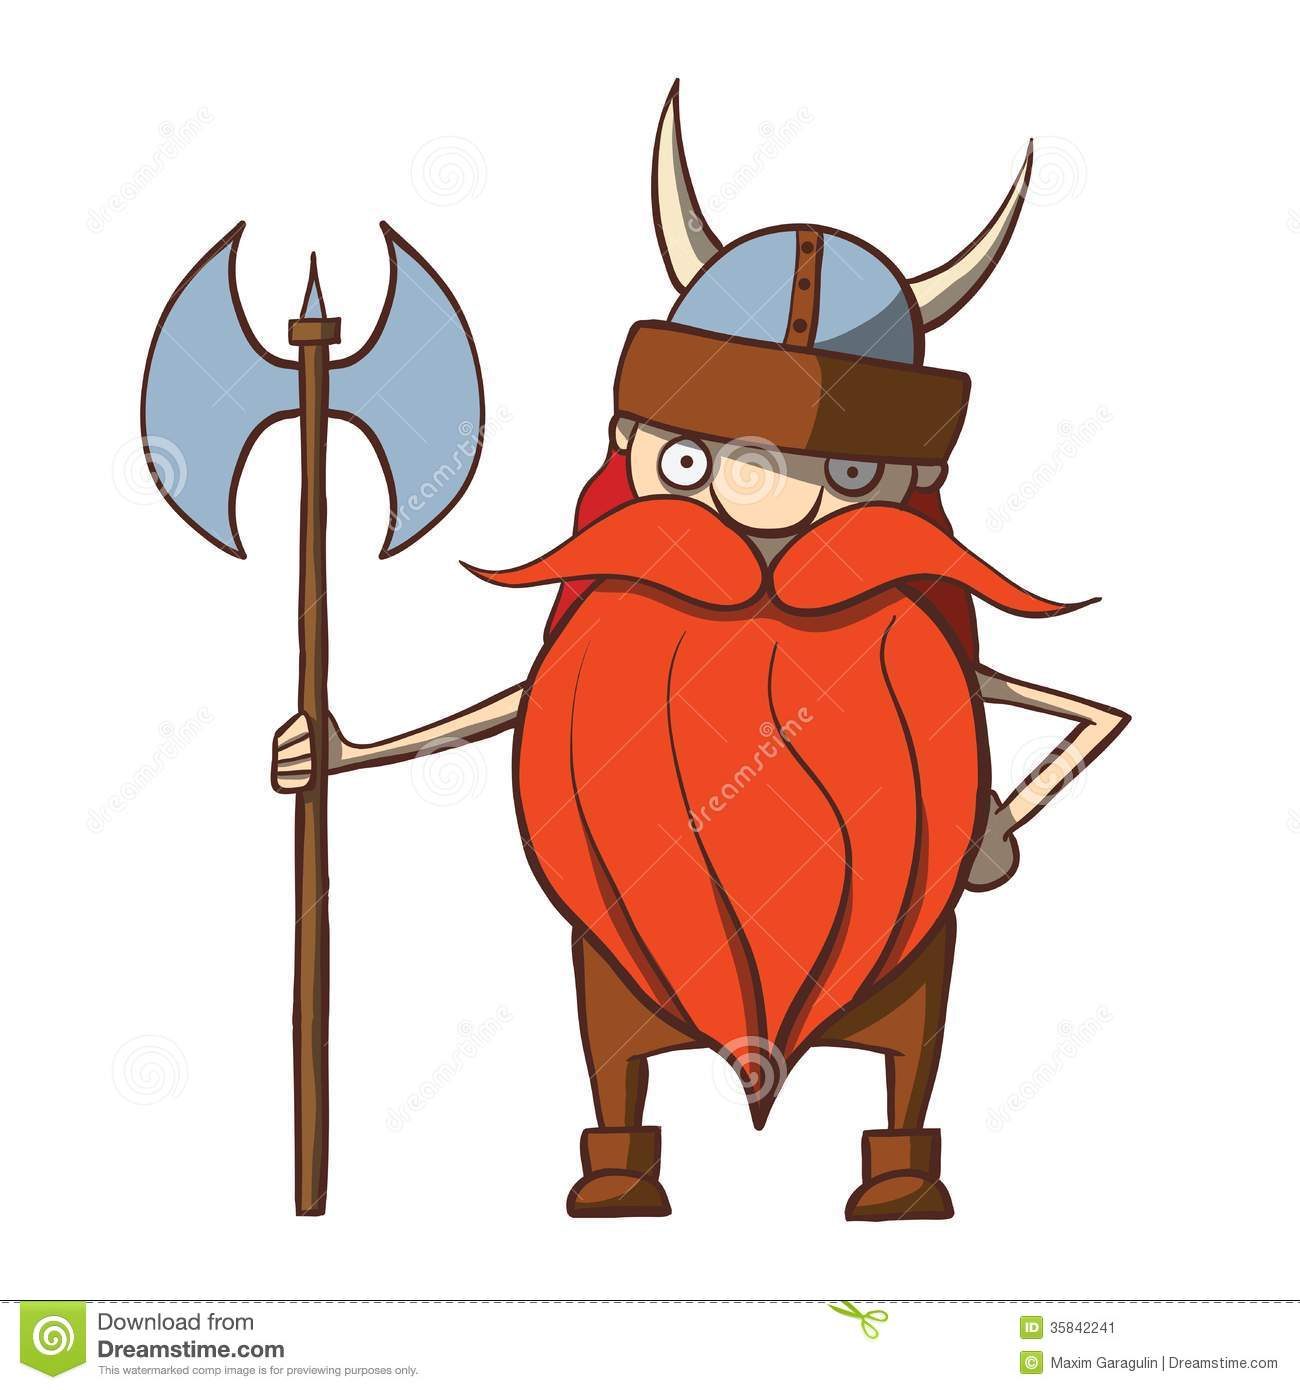 cartoon viking stock illustrations – 3,290 cartoon viking stock